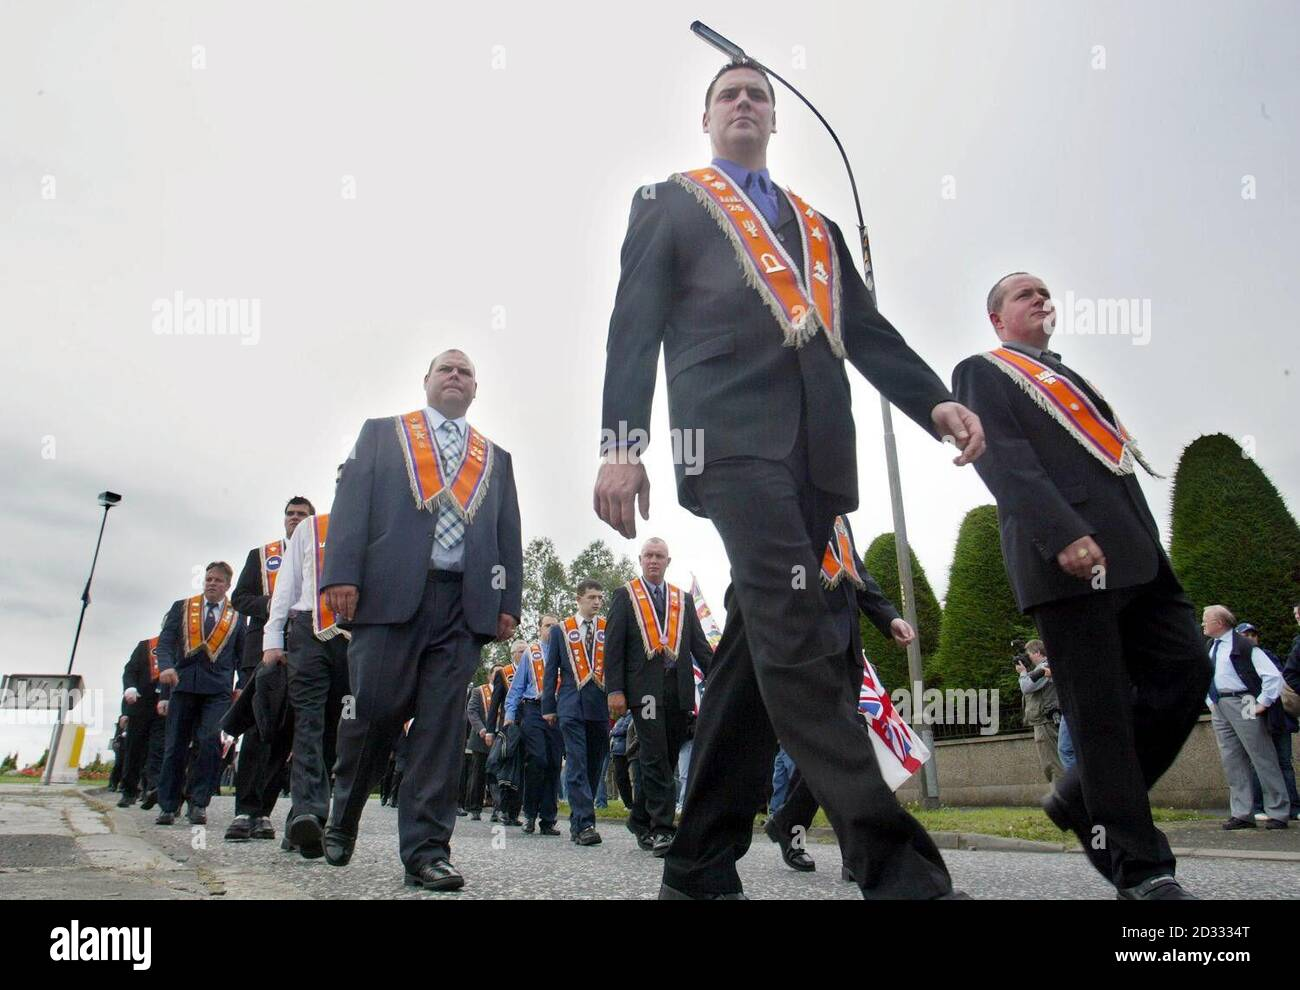 Portadown Orangemen marching through Portadown town prior to their Church service. For the sixth-year running the Orange Order has been blocked from returning through the staunchly Catholic Garvaghy Road following a service at Drumcree Parish Church.  *   on the edge of Portadown. Even though a new peace initiative was put forward which involved the order being allowed to walk down the flashpoint route in return for ending their ban on direct talks with the nationalist residents, it came too late to overturn this year's ruling by the Parades Commission.  Stock Photo